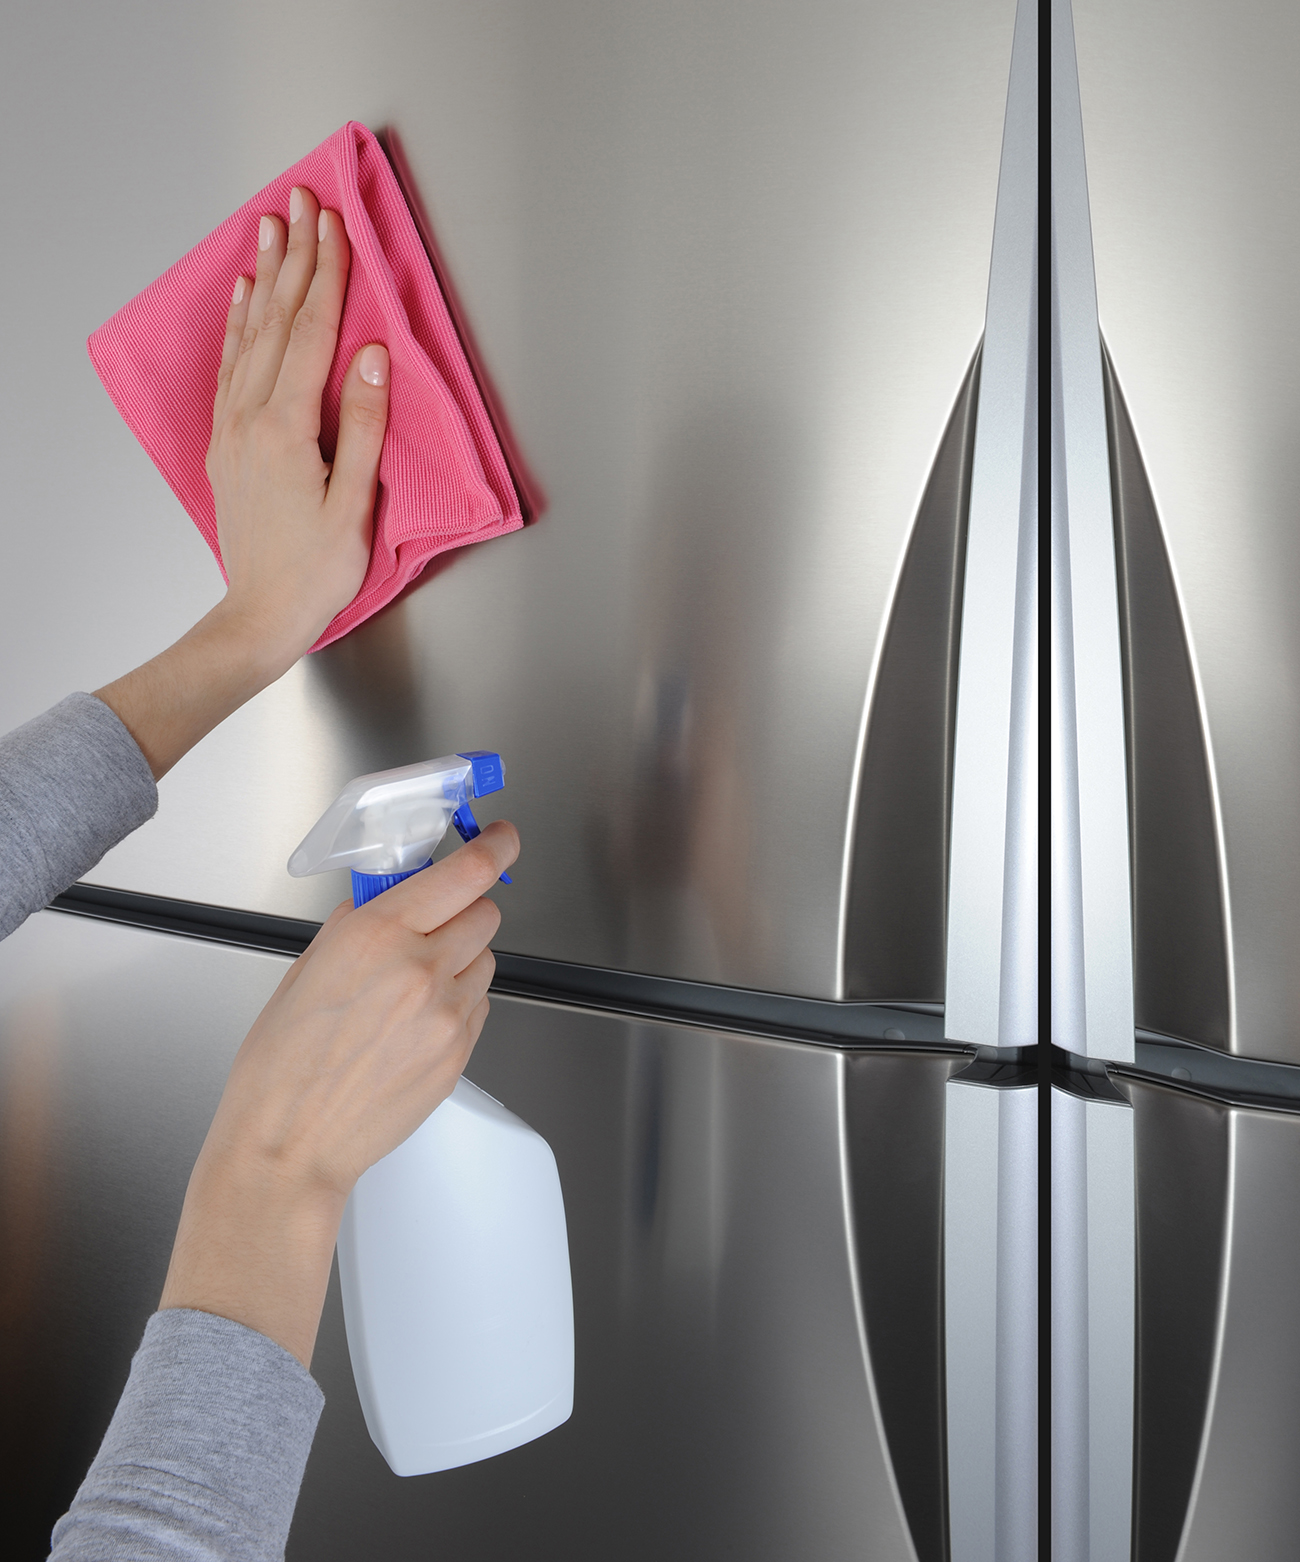 cleaning stainless-steel fridge with microfiber cloth